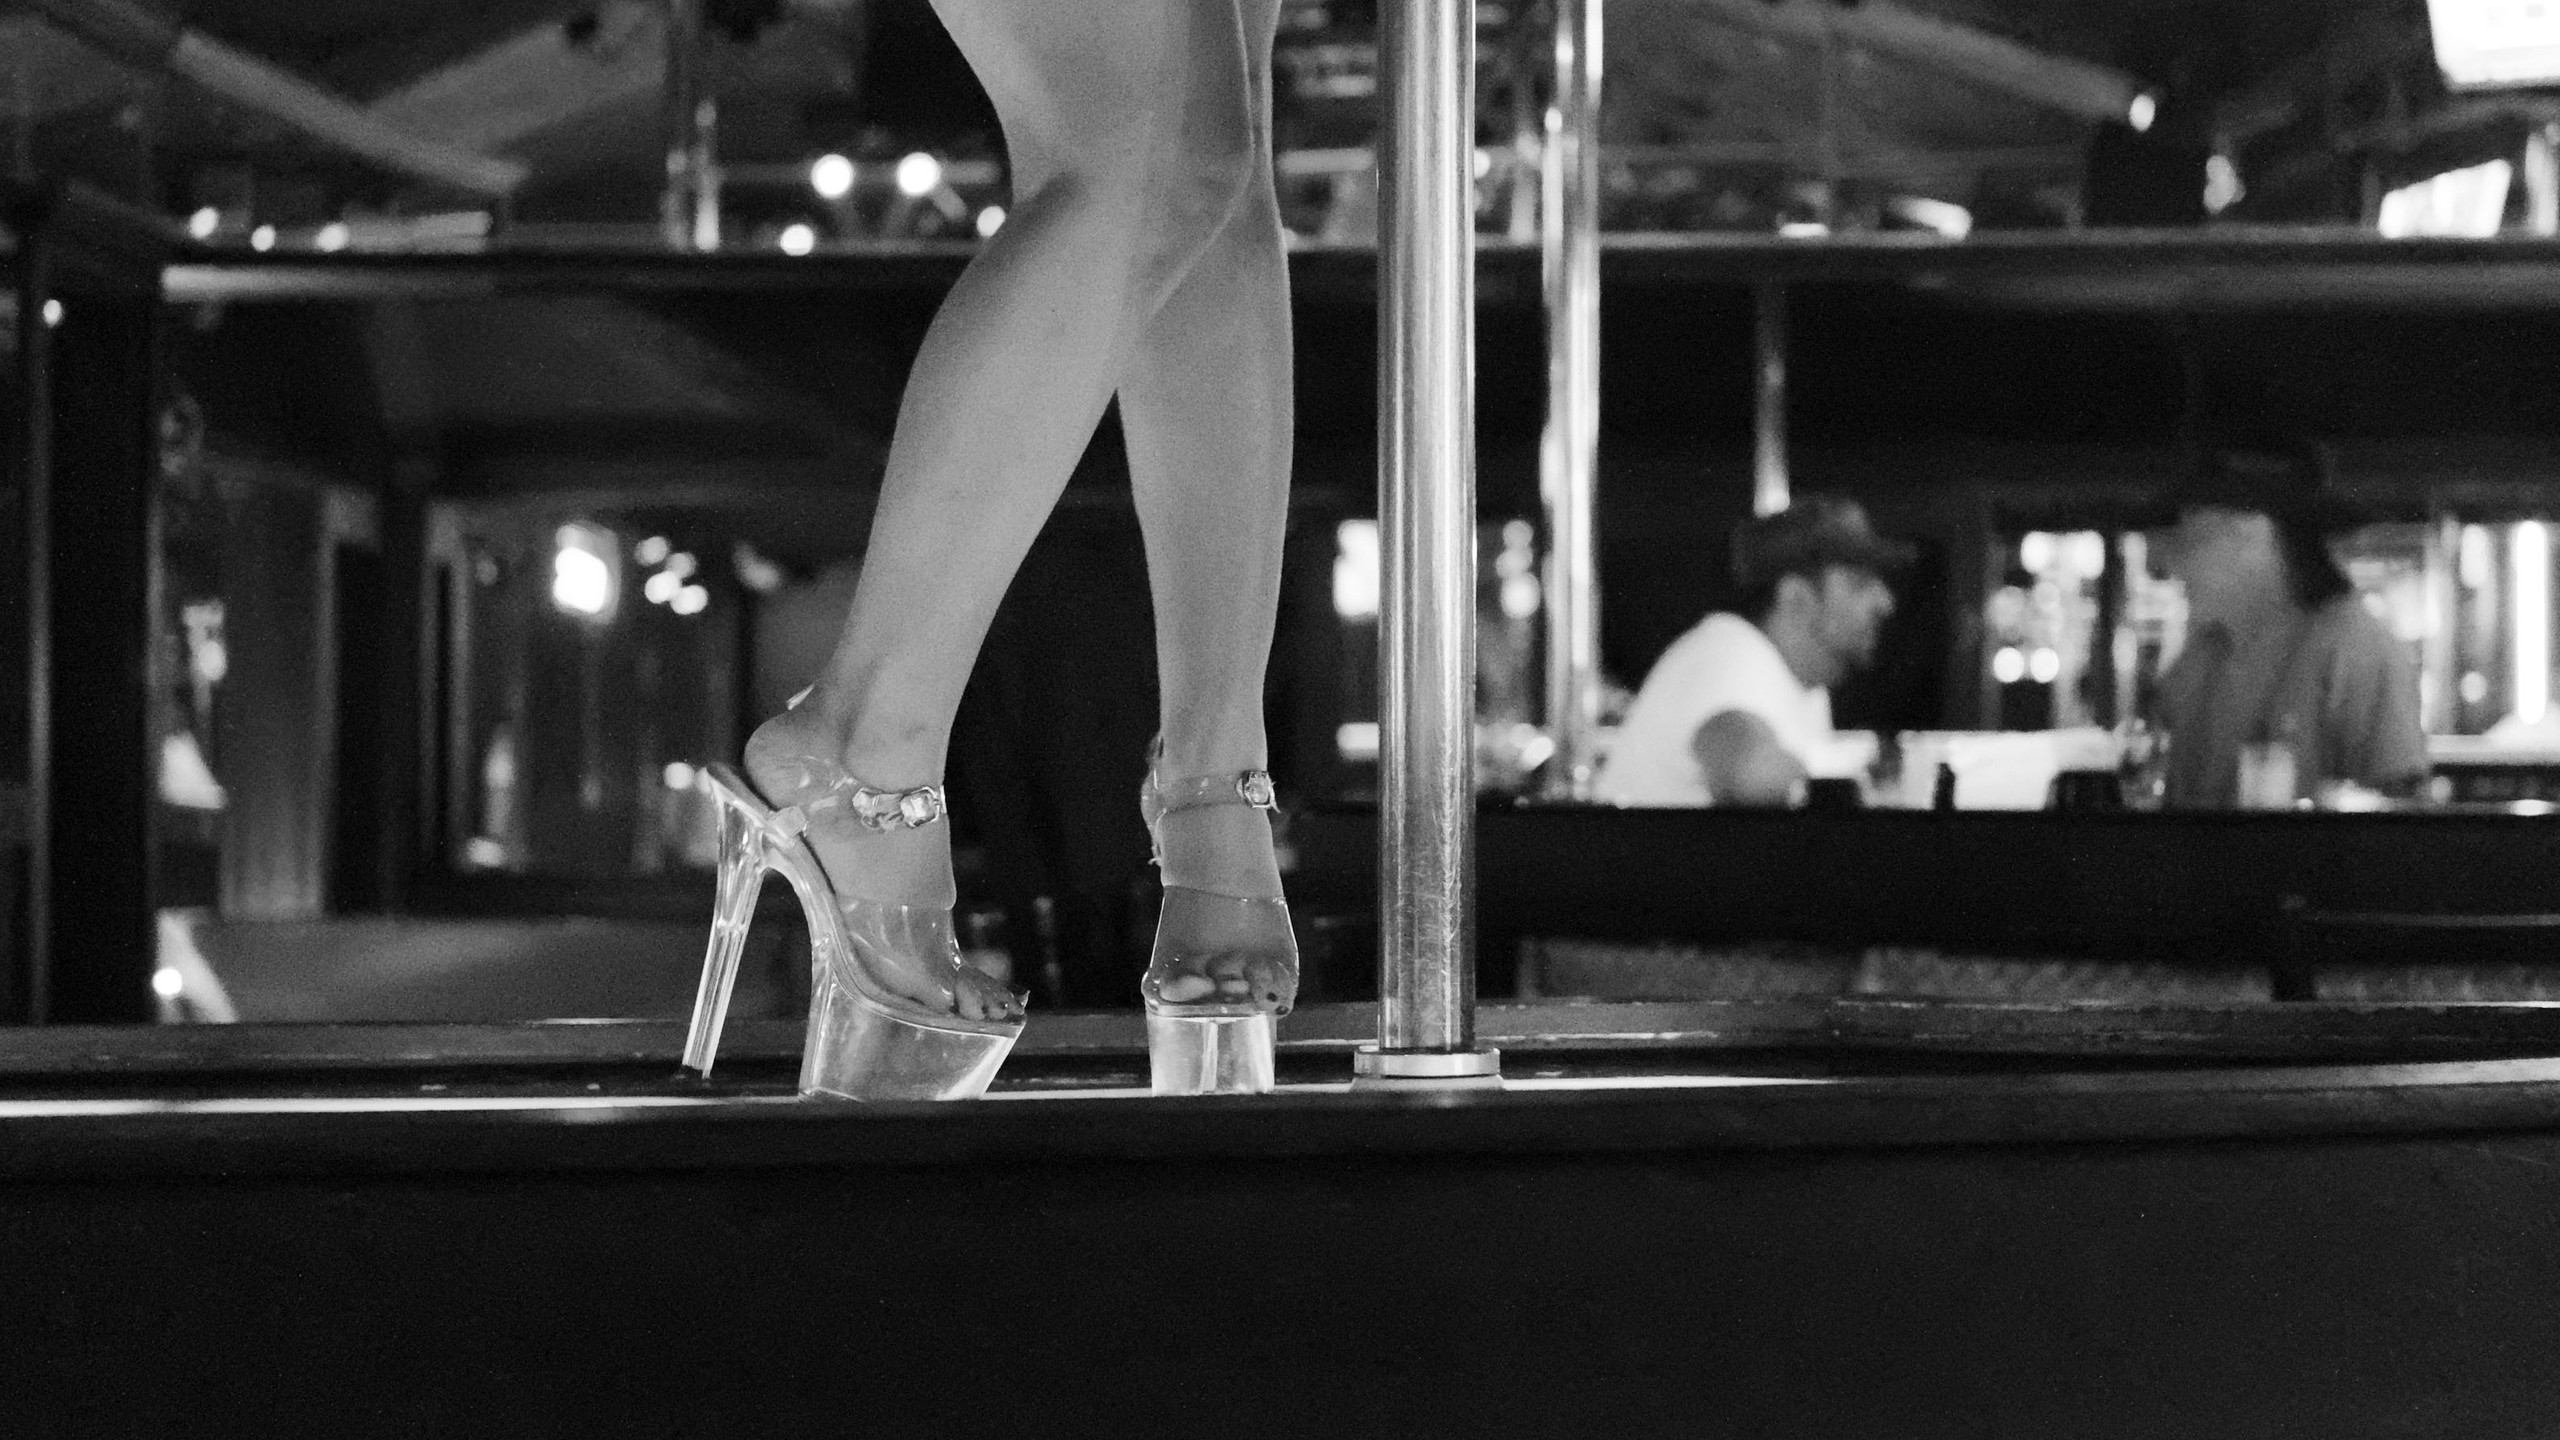 Sometimes strip clubs are just a place for guys to hang out with each other. In this image, while the dancer is (quite literally) the main focus, in the background you can see two customers at the bar talking to each other, completely oblivious to her naked body.